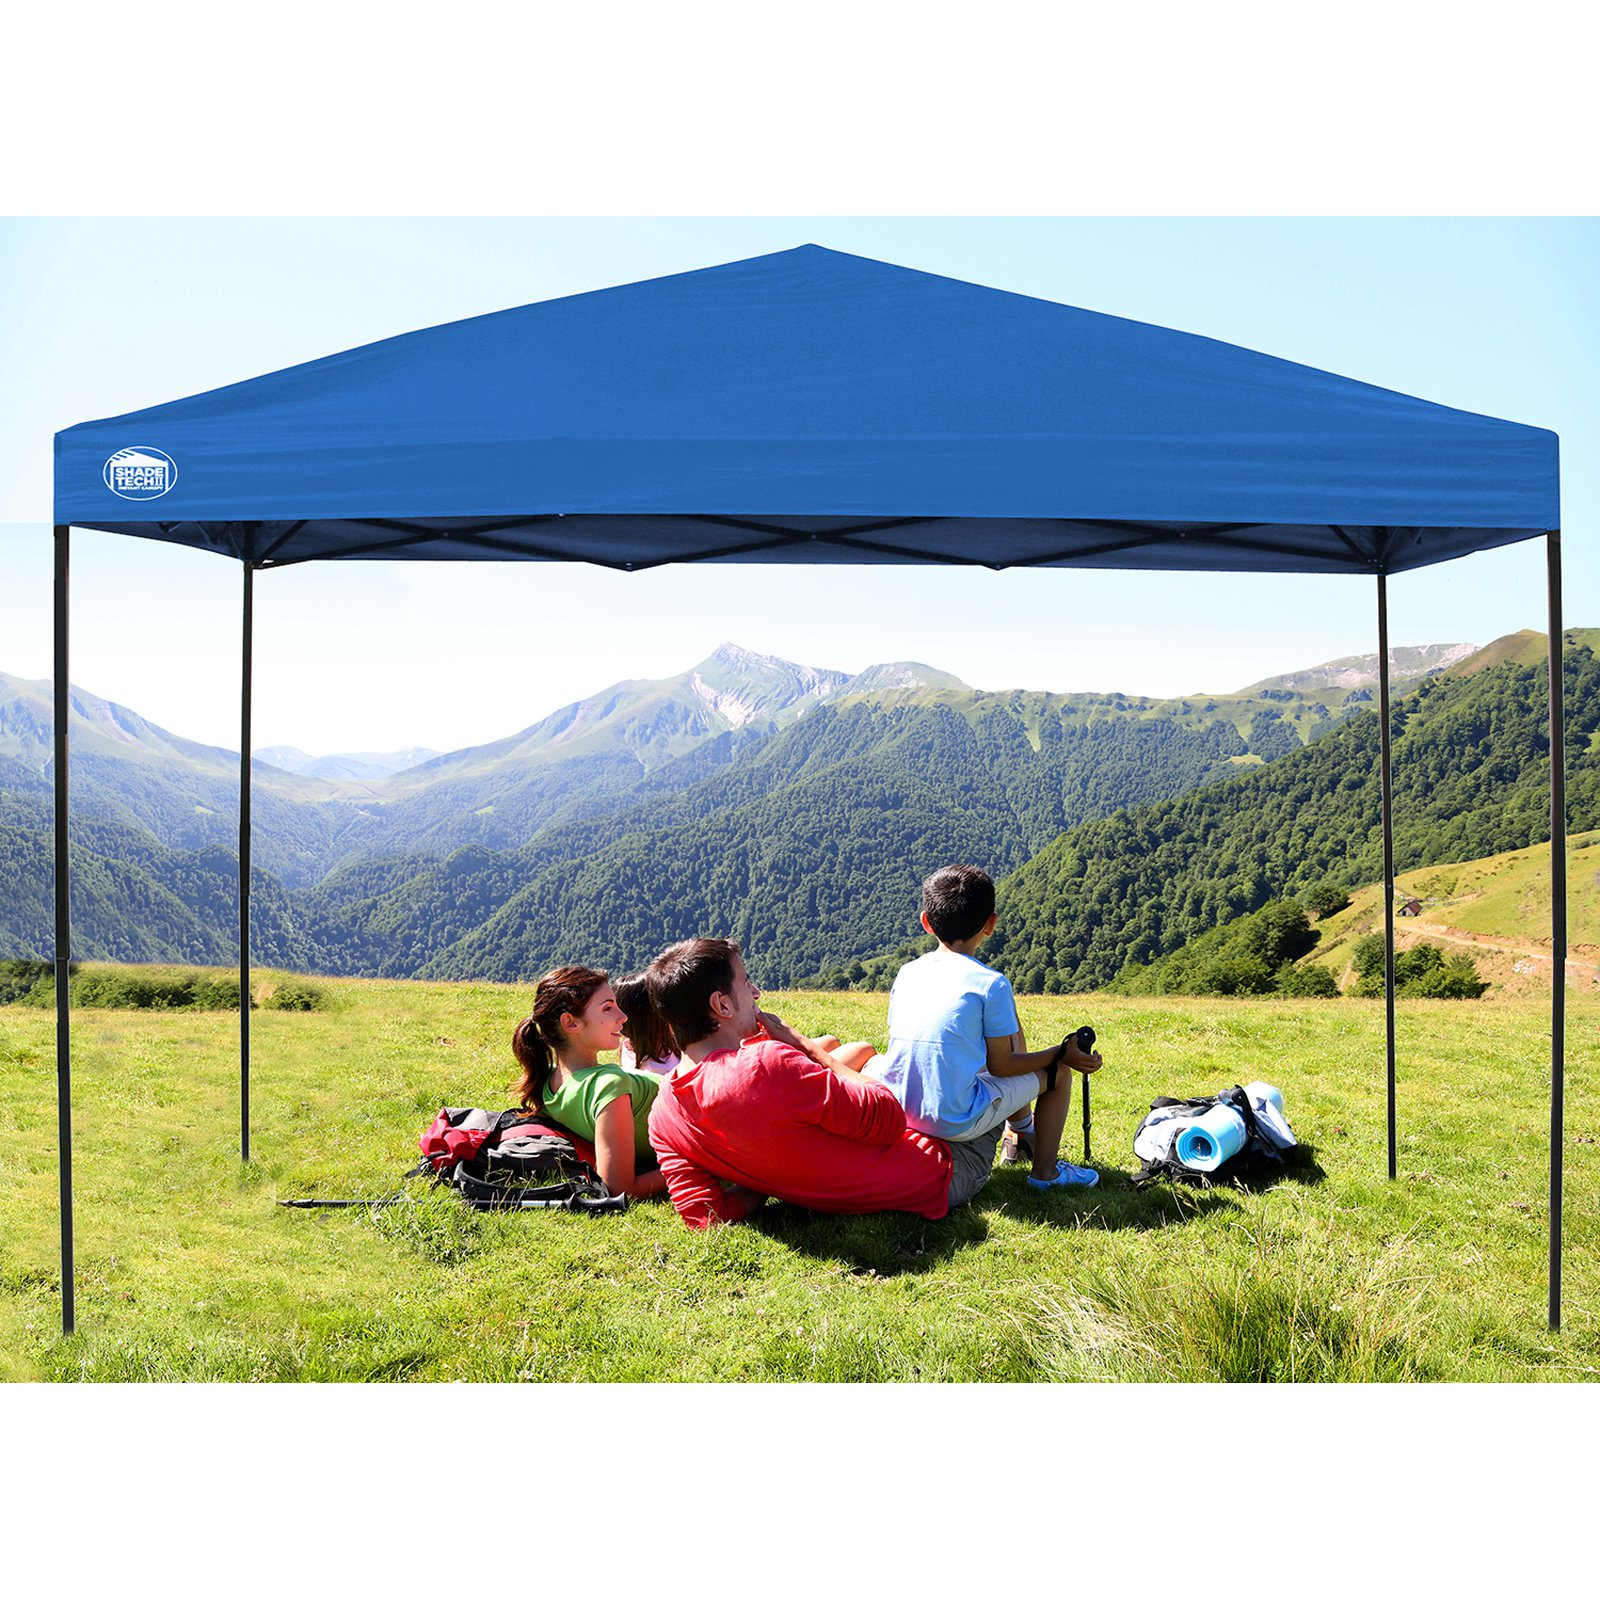 Shade Tech II ST100 10 x 10 ft. Instant Canopy  sc 1 st  Walmart & Shade Tech II ST100 10 x 10 ft. Instant Canopy - Walmart.com